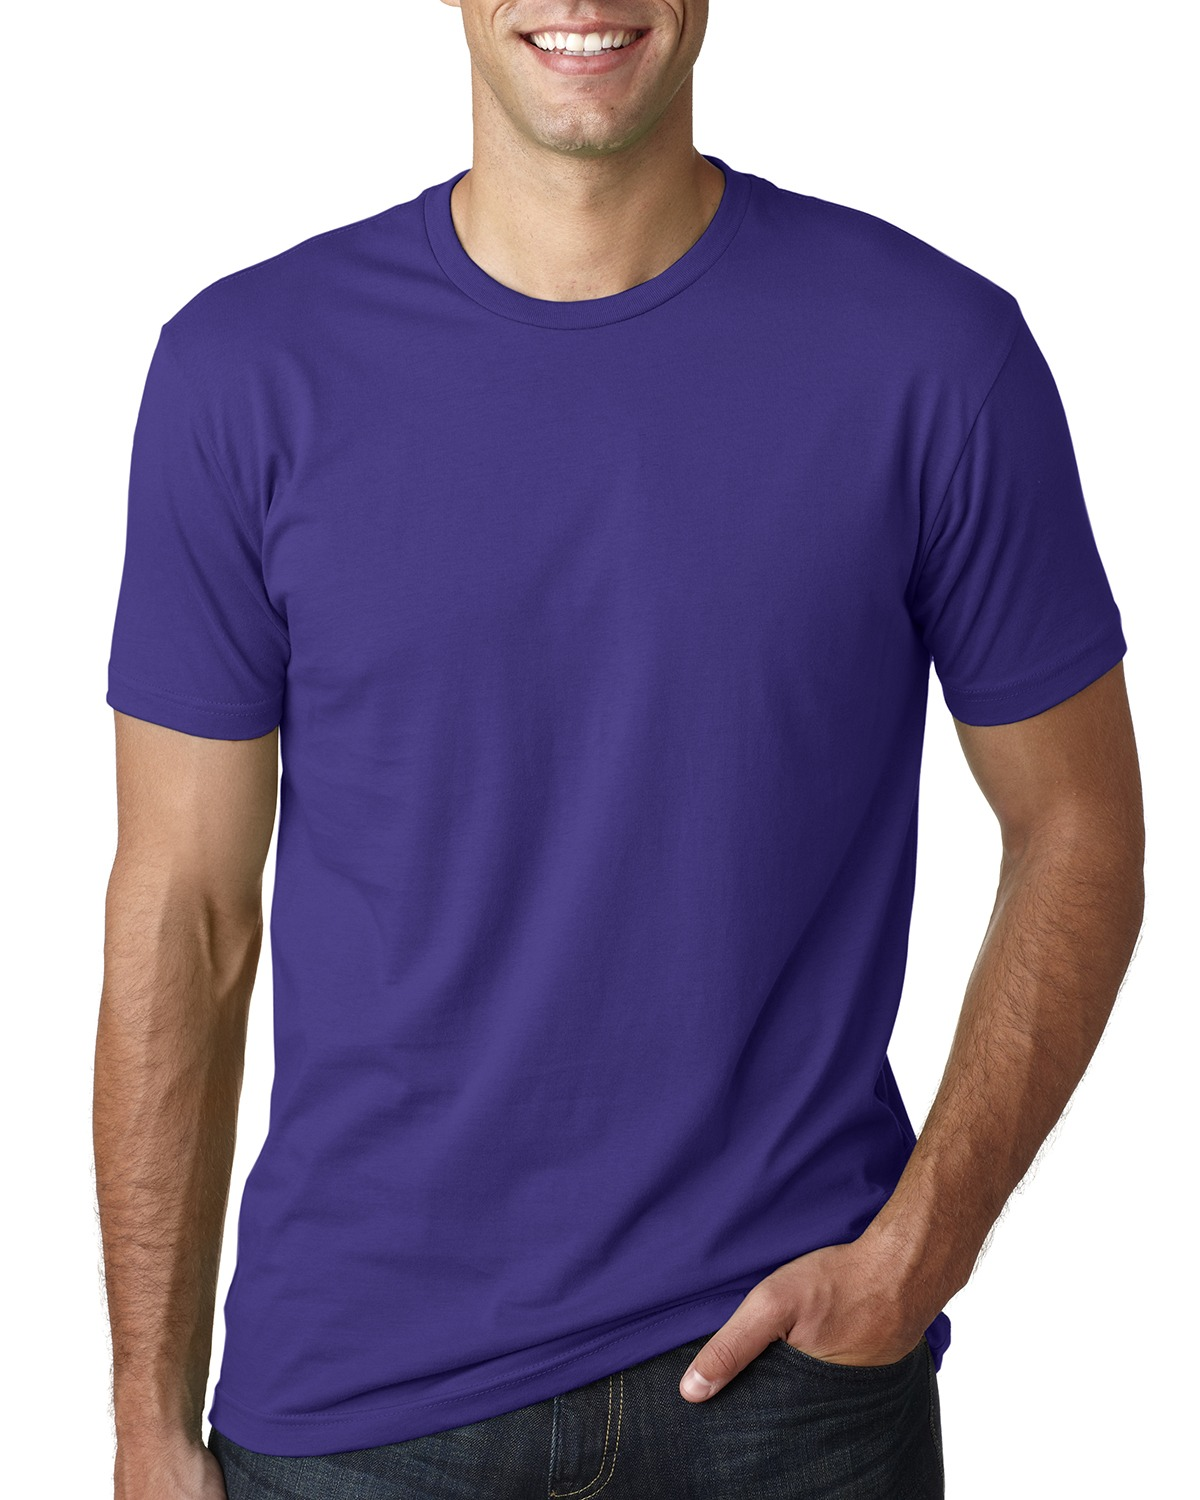 Next Level 3600 – Men's Cotton Crew 1